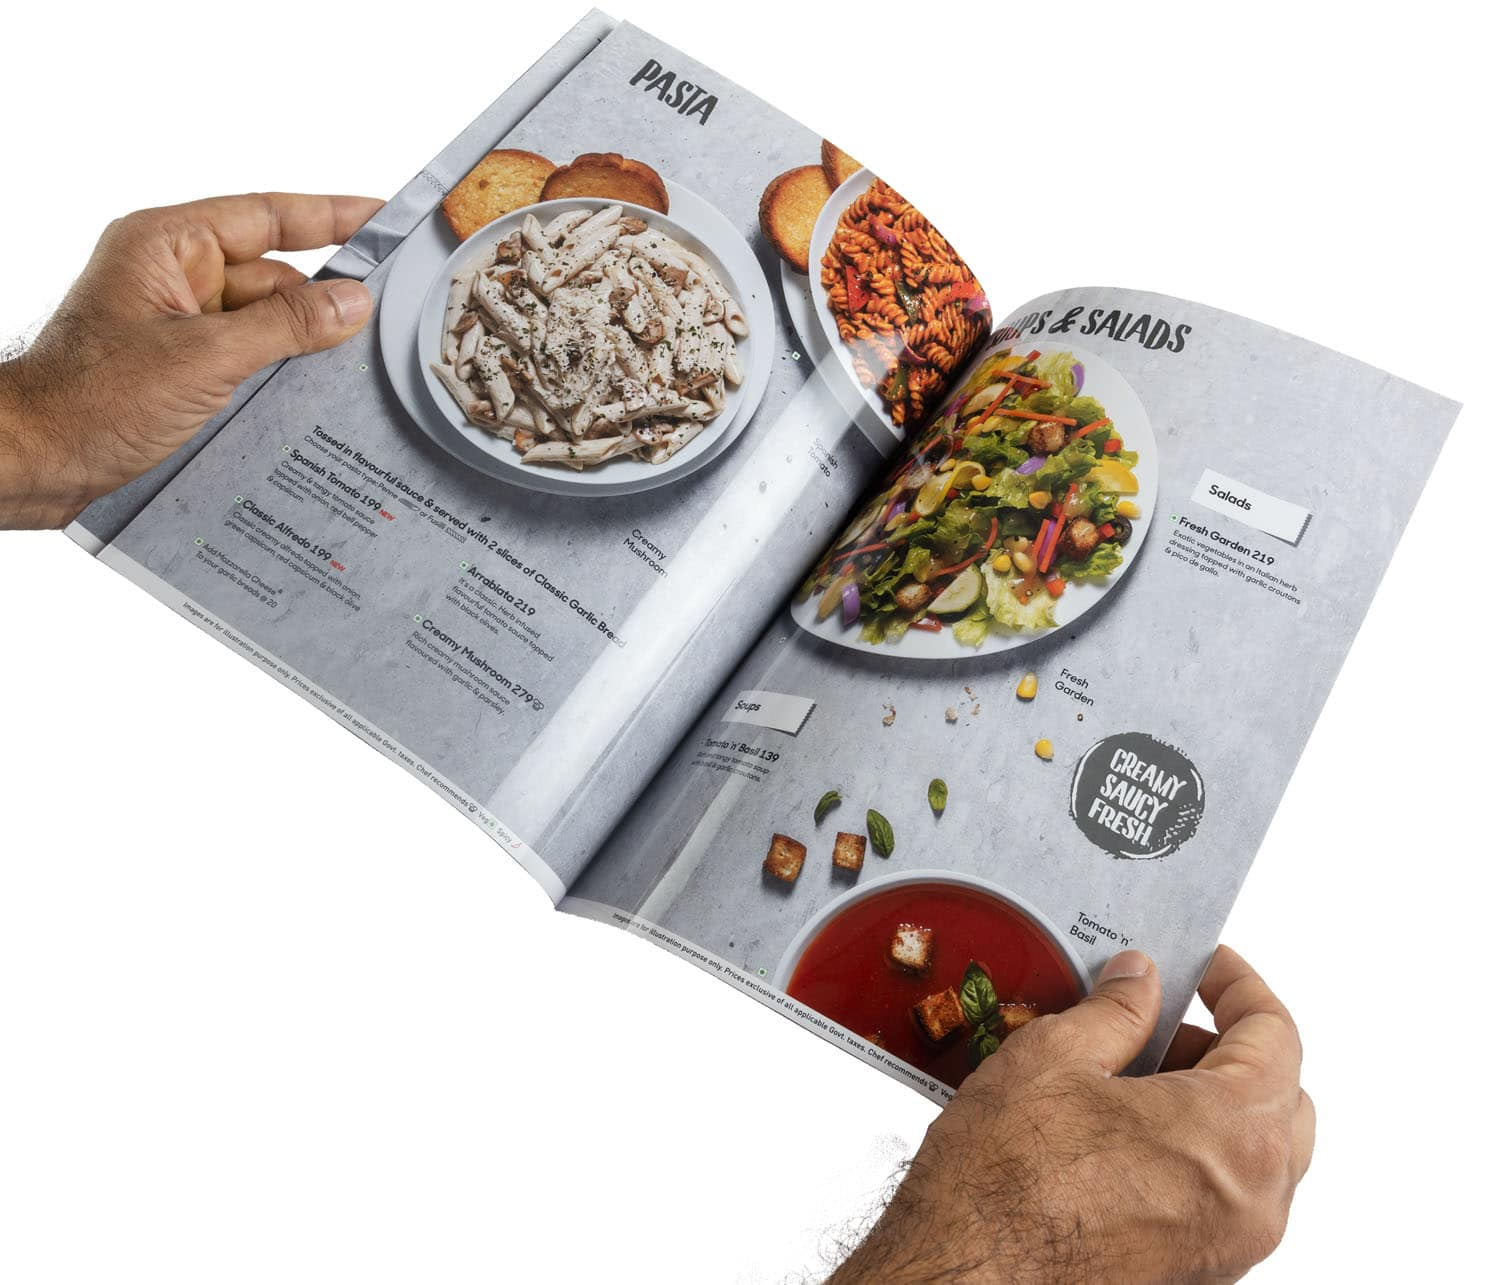 Glossy high resolution restaurant menu card printed as a booklet held open to show images of pasta salad and soups